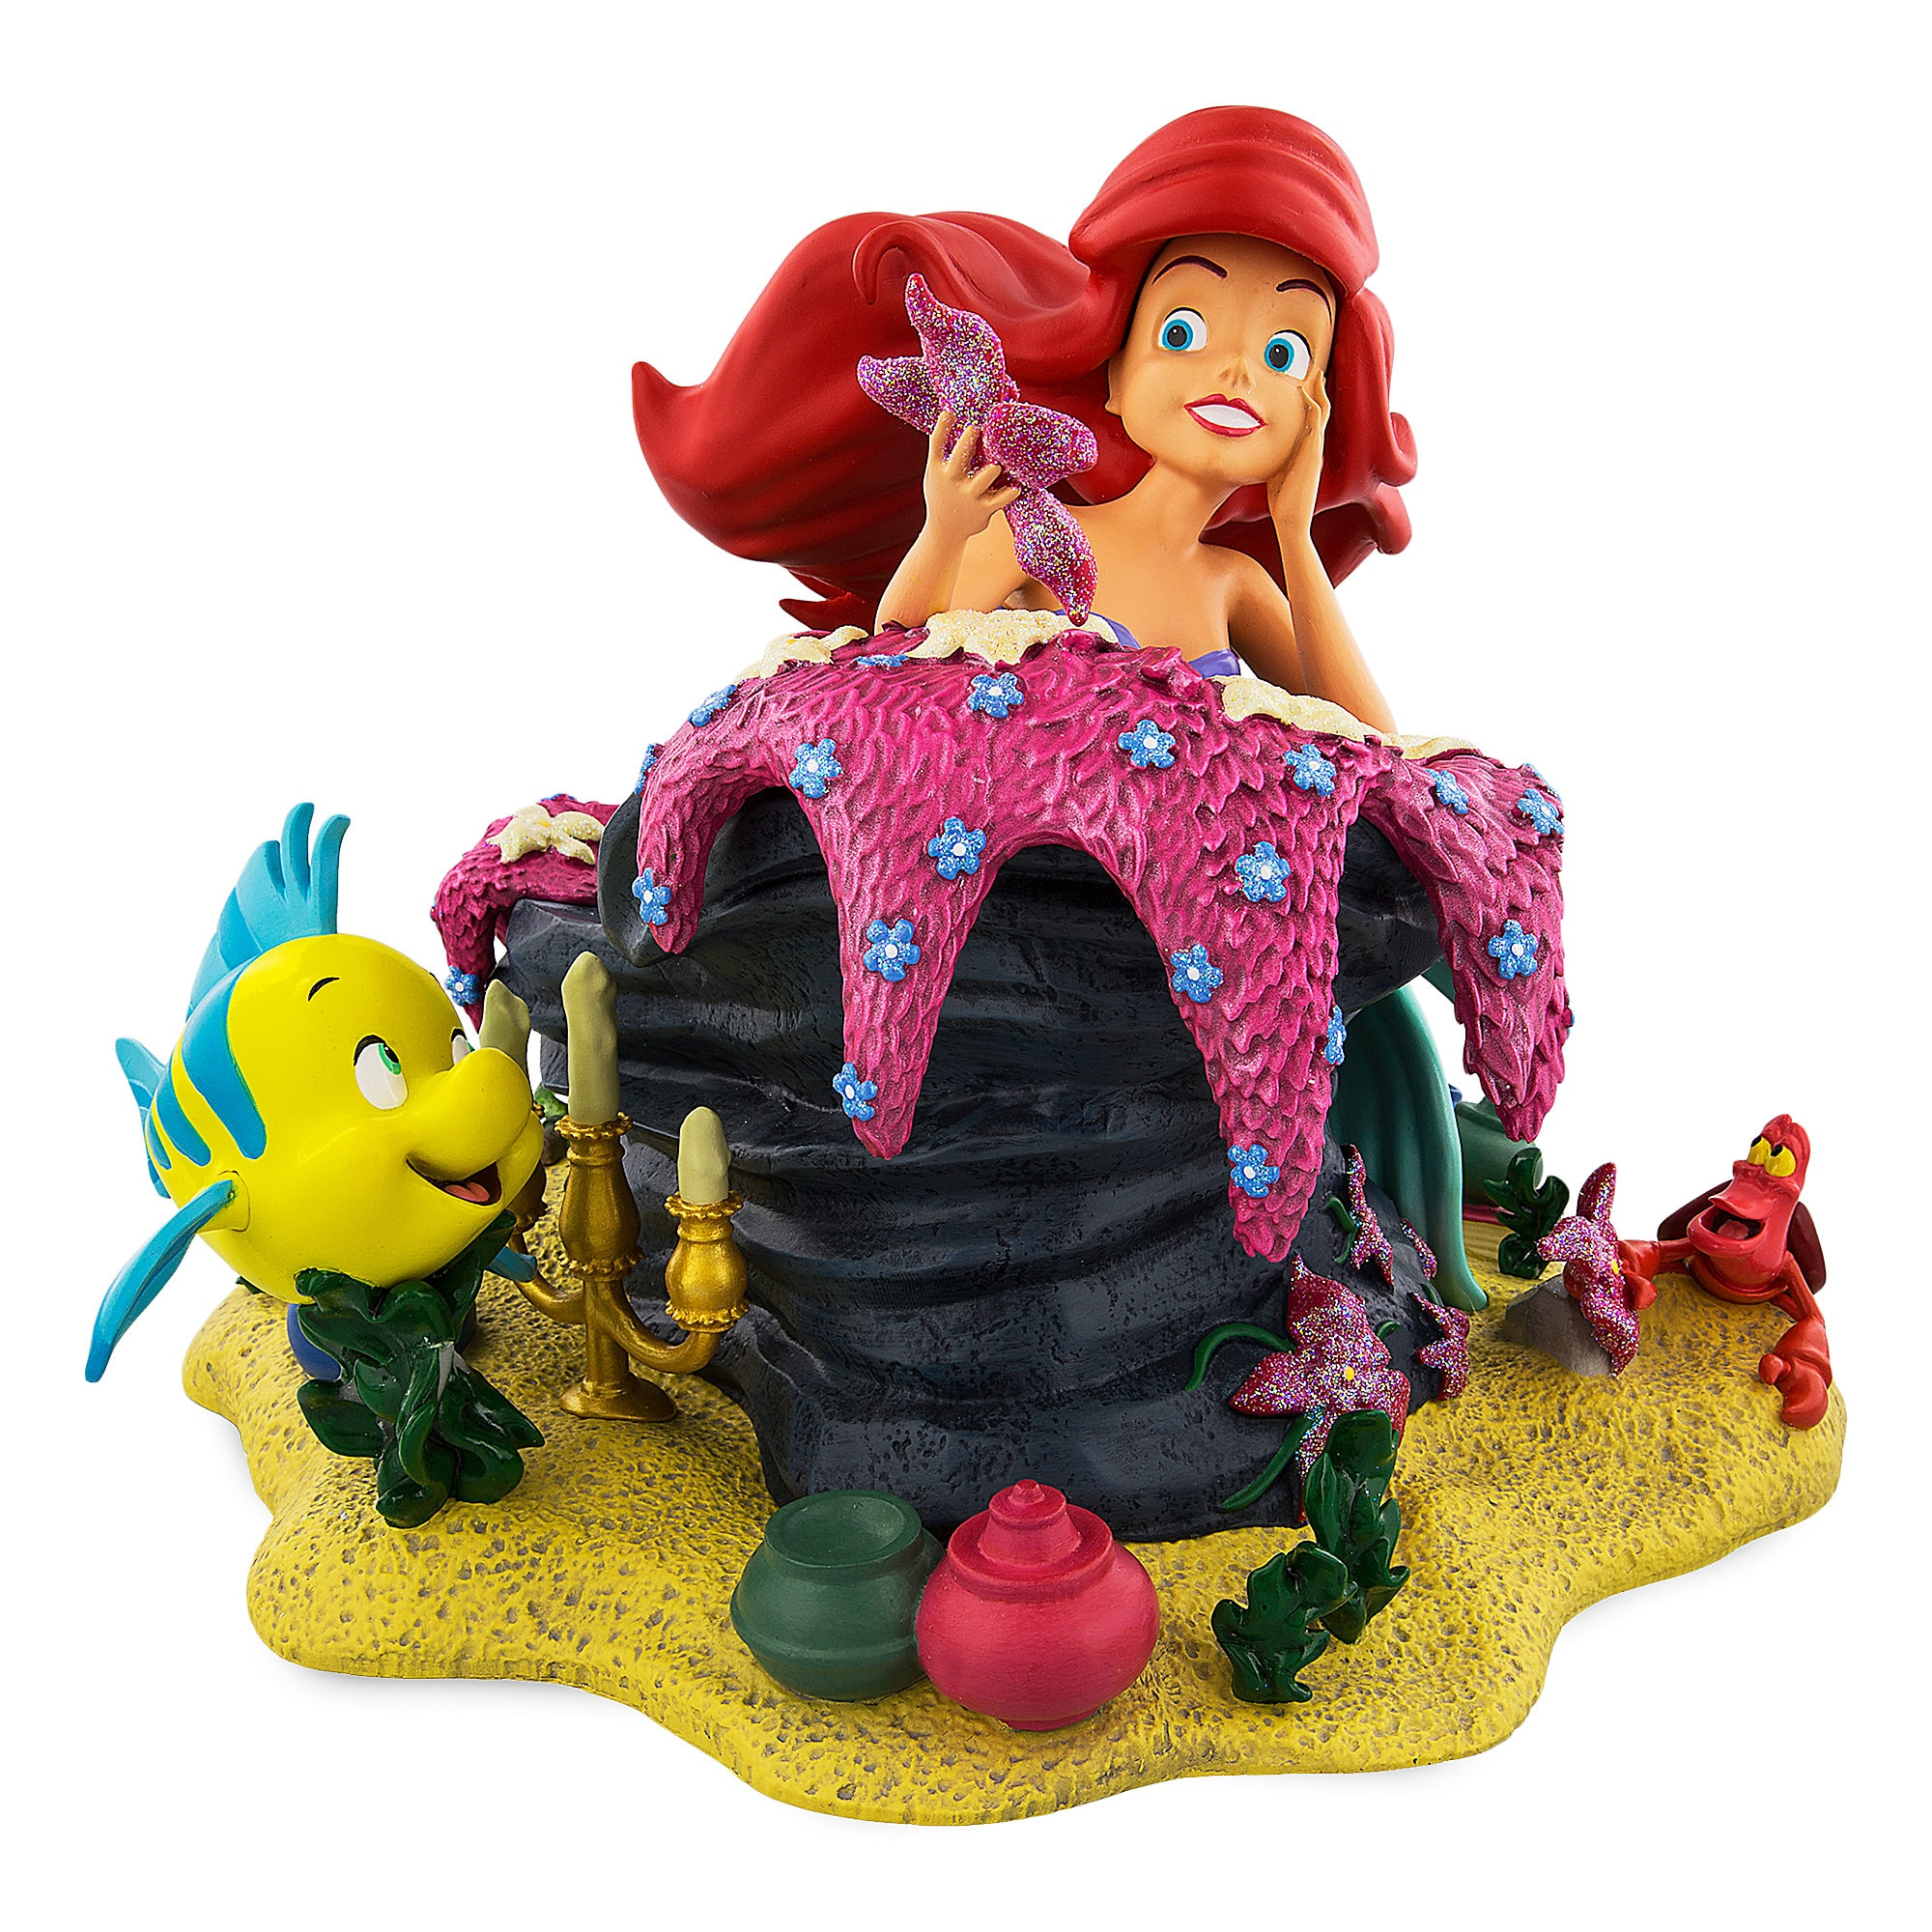 The Little Mermaid Figure